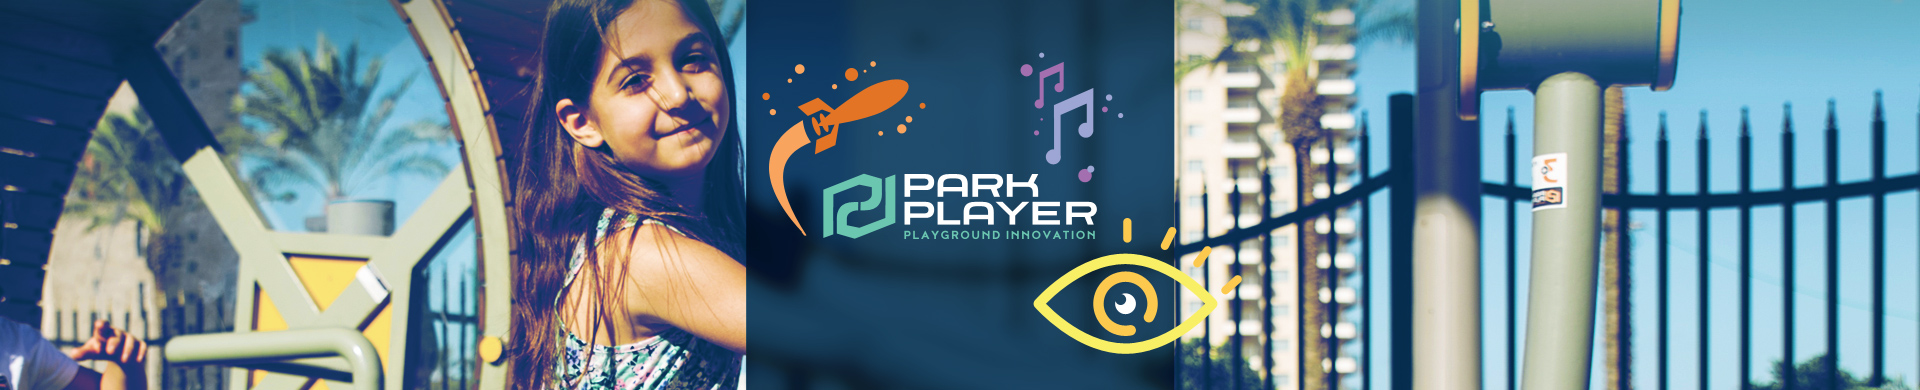 park player - playground innovation